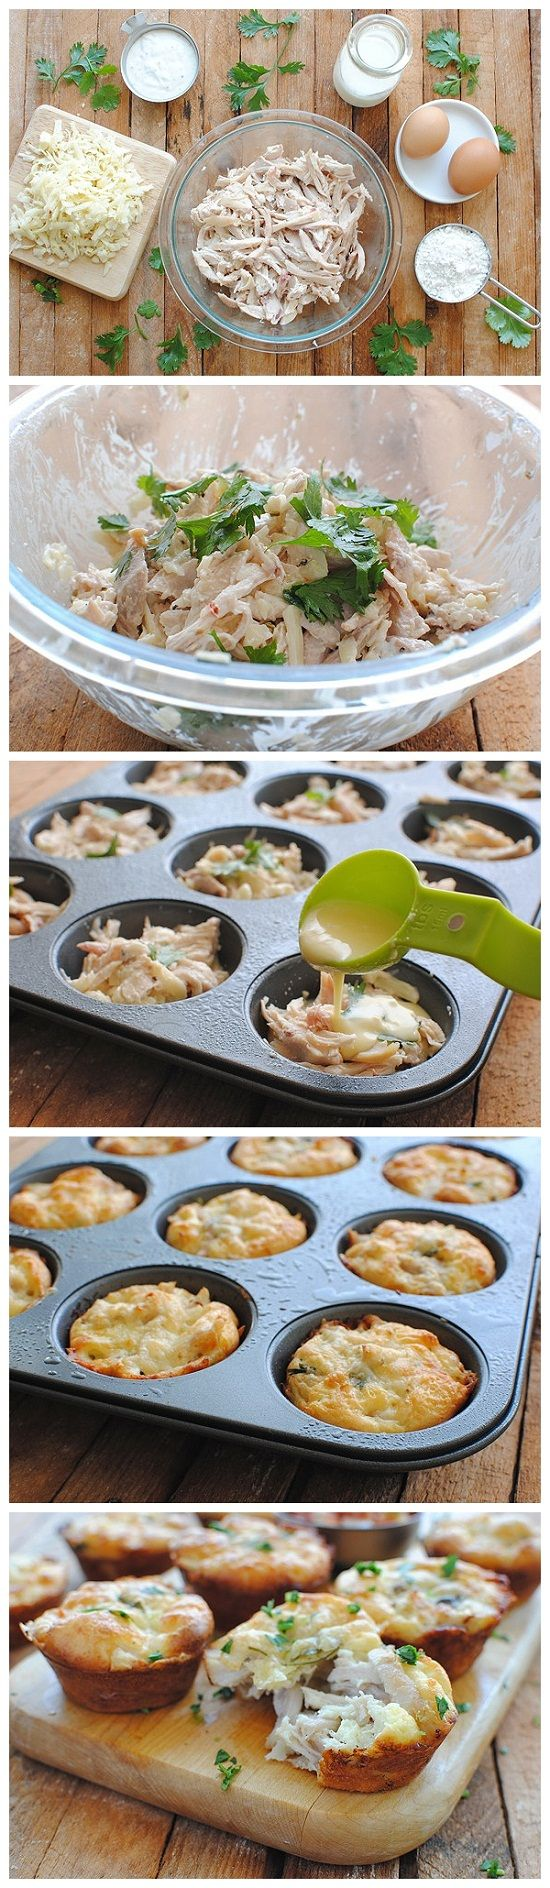 Mini Tex-Mex Chicken and Cheese Pies--replace with low carb biscuit mix